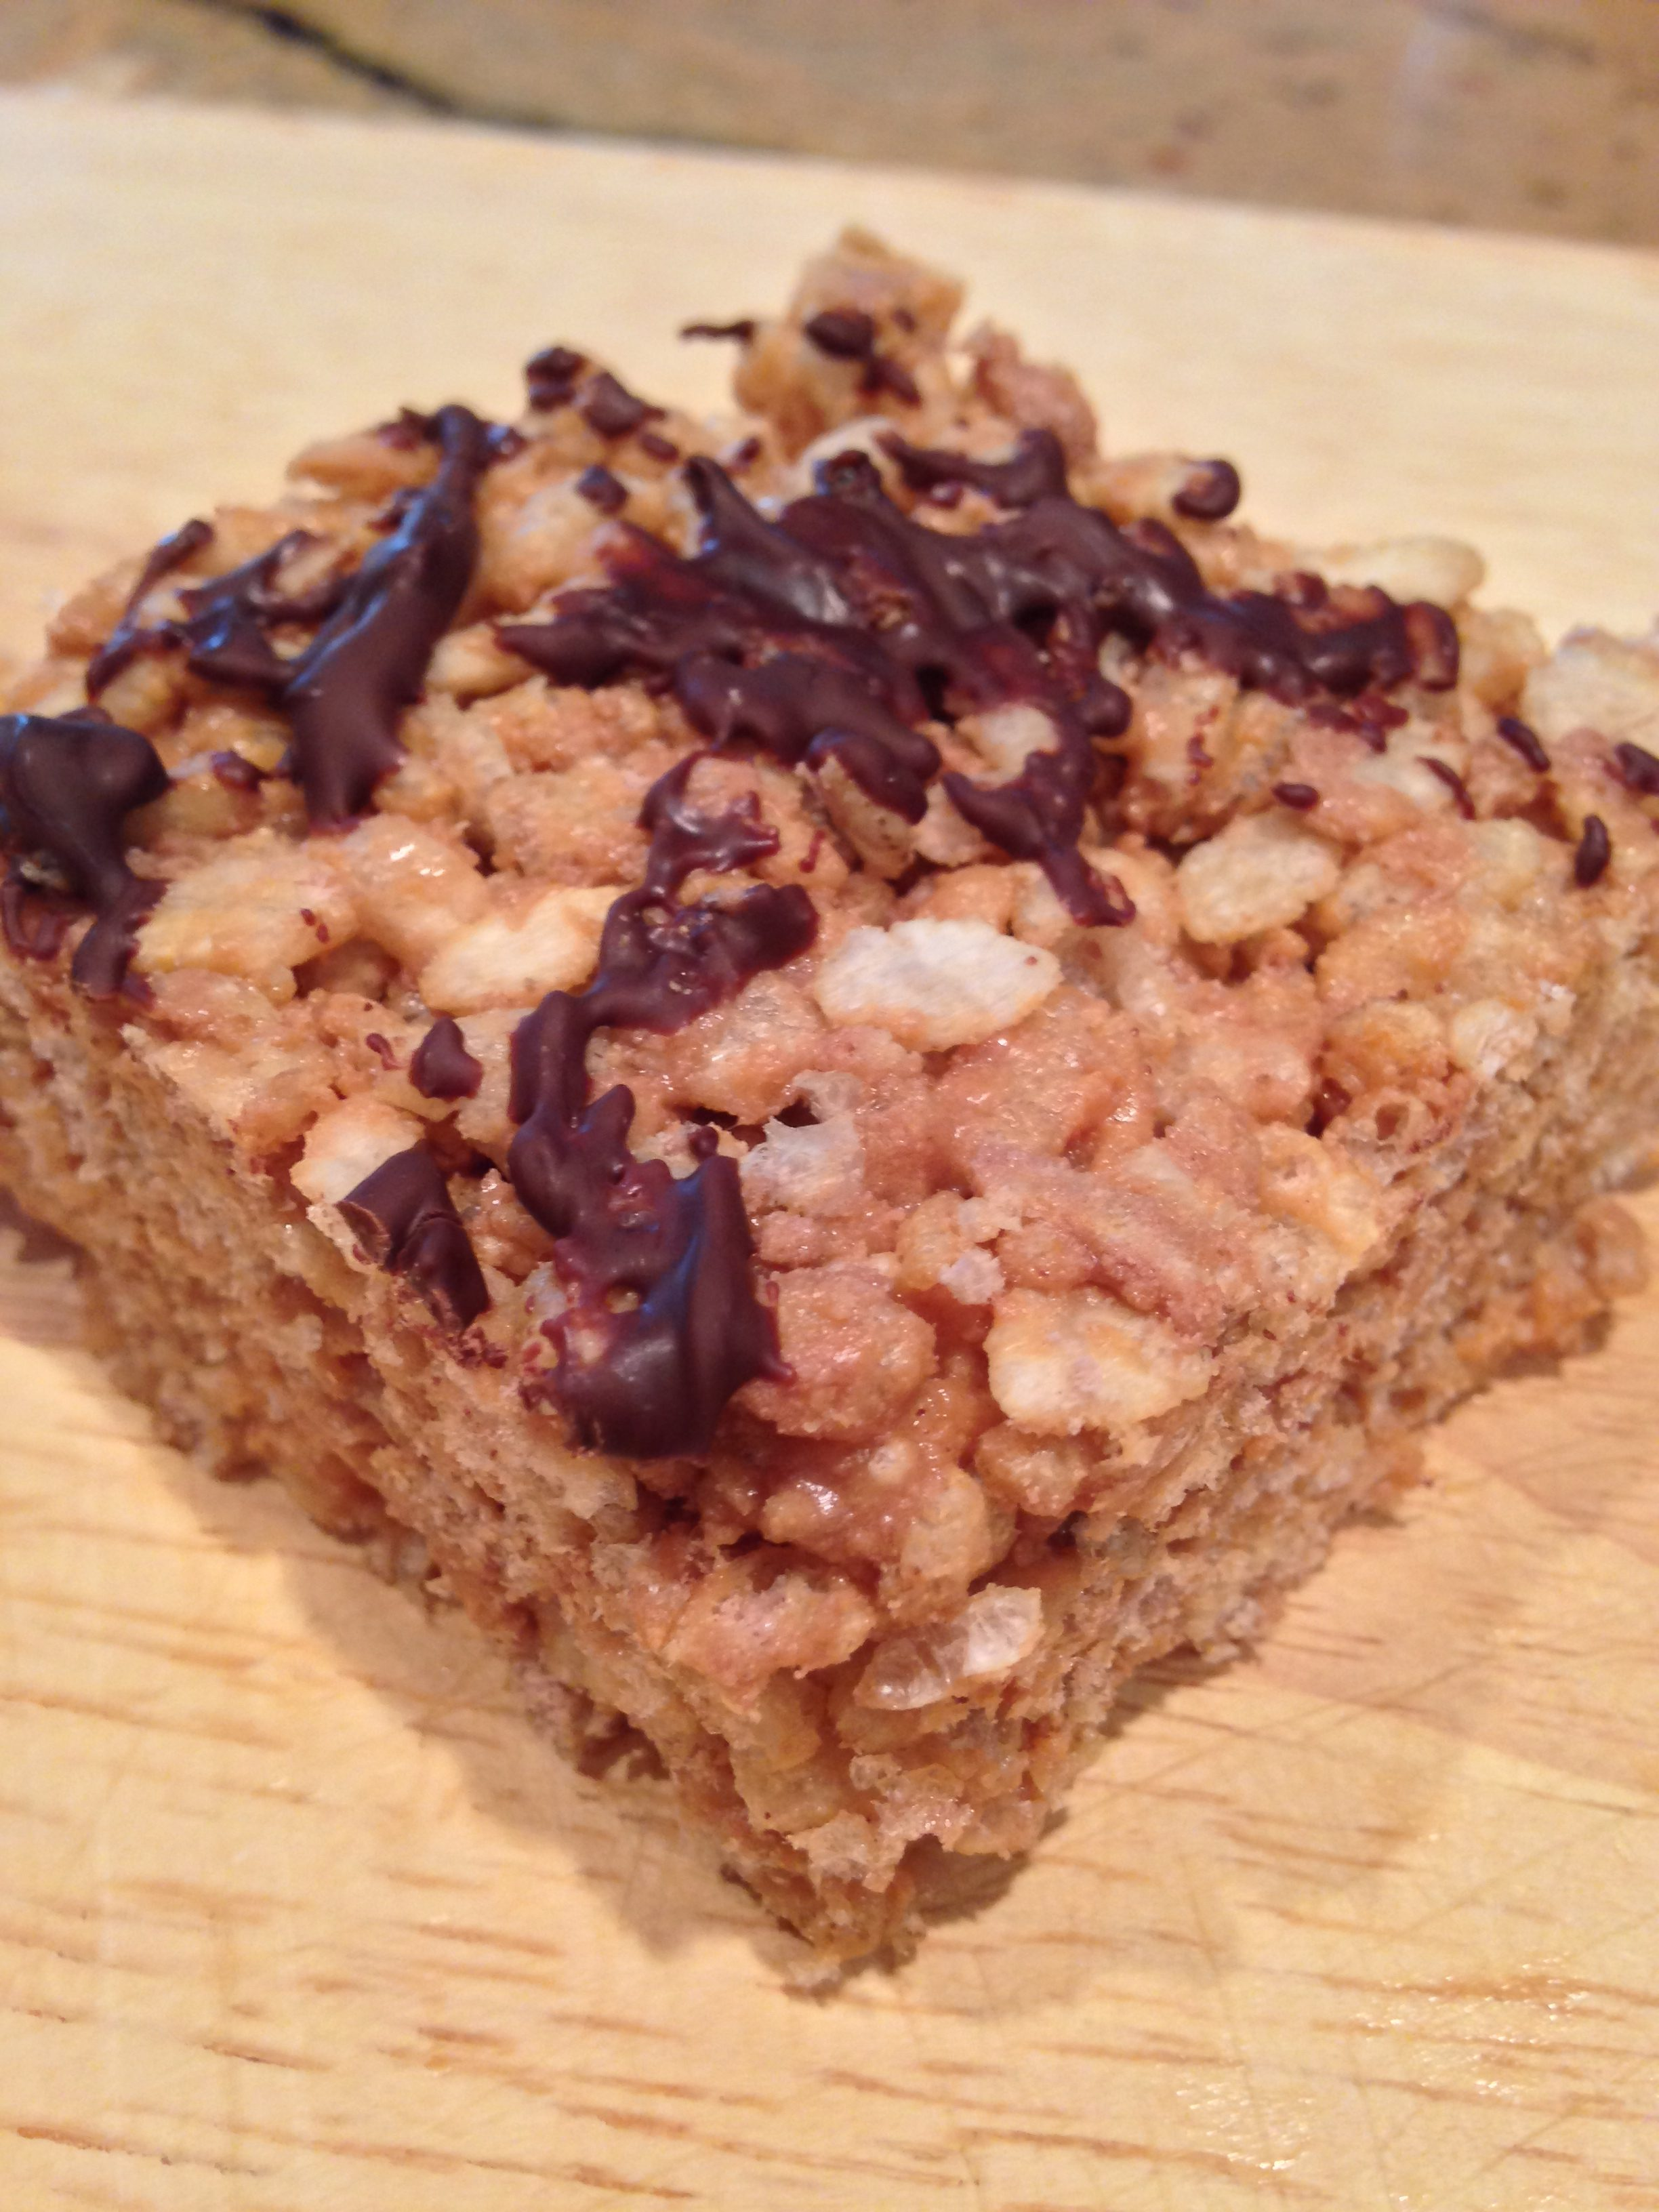 Chocolate peanut butter protein rice krispie treats using About Time protein